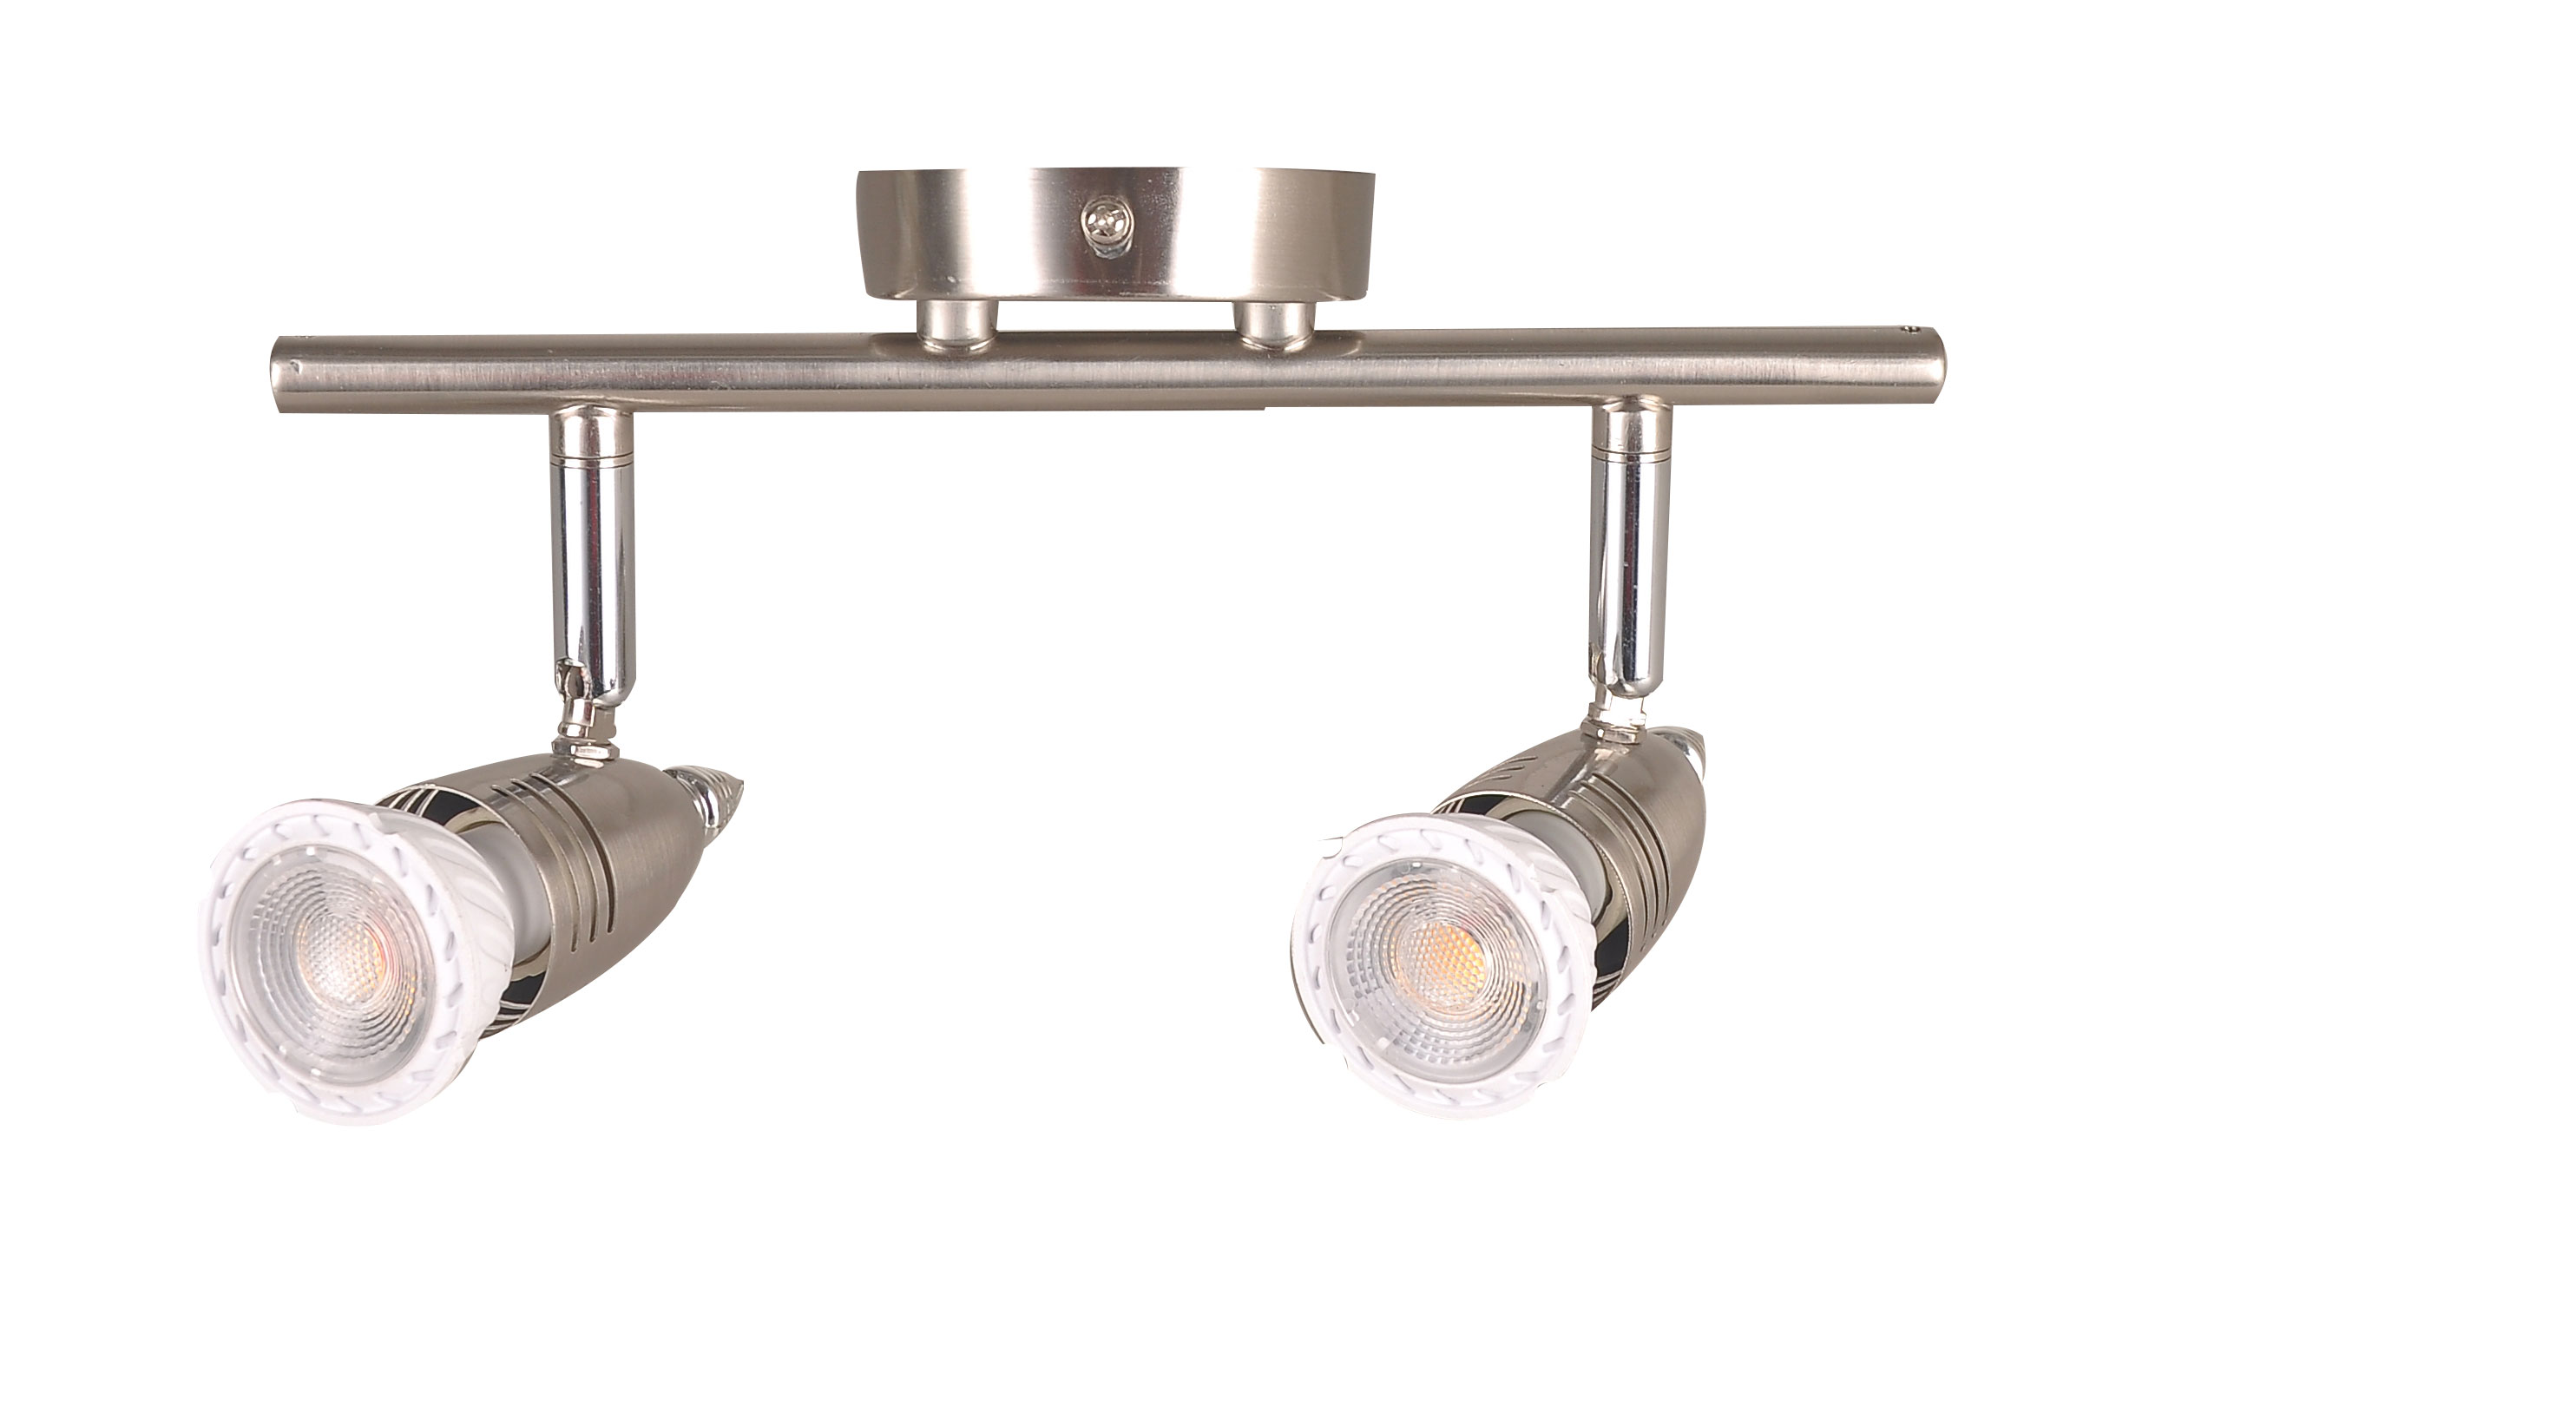 kimyan two light track lighting kit plug in brushed nickel with on off switch with mr16gu10 led bulbs warm white cri90